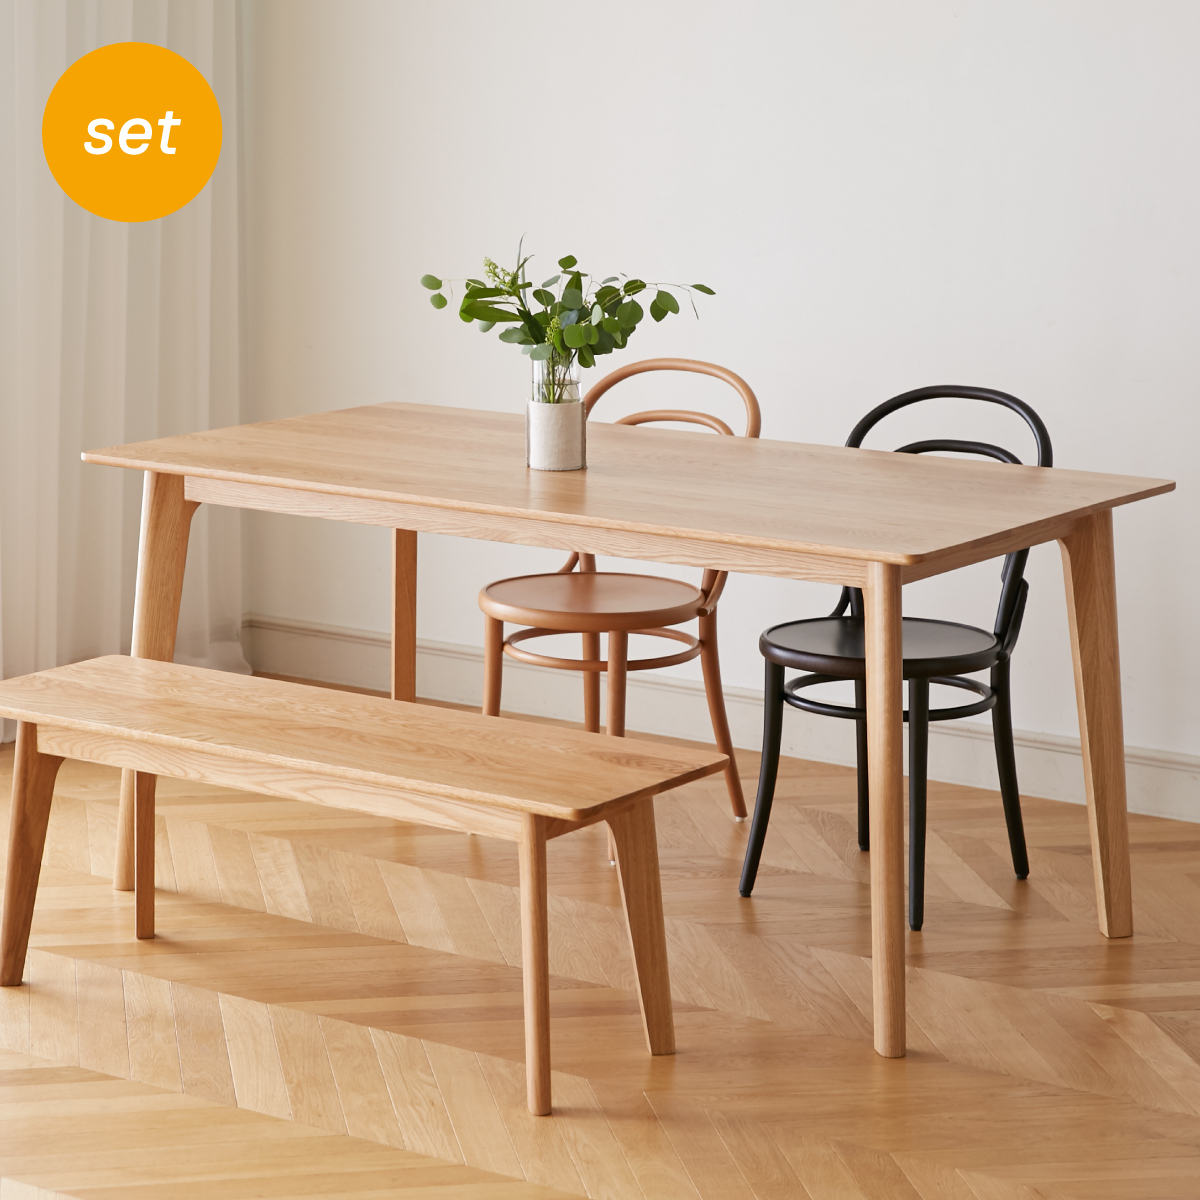 [세트 5%] Original Oak Rectangle Leg 테이블 세트